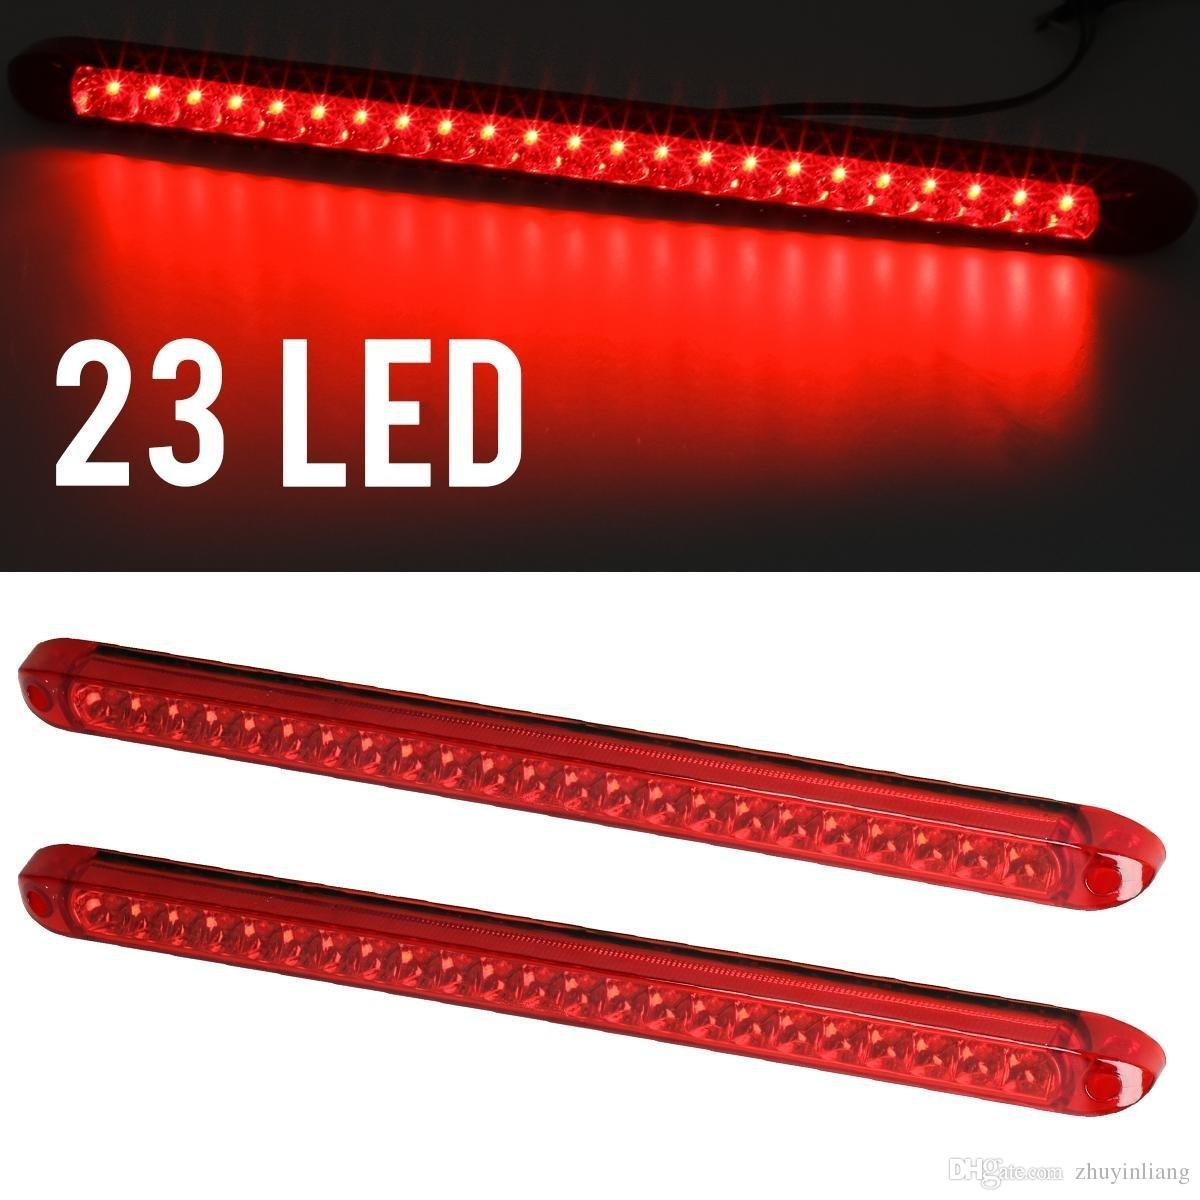 Led Submersible Trailer Light Supplier Kuxniya This Old Wiring Tail Lights Etrailercom Youtube Red 23led Bar Stop Turn 3rd Brake Truck 17 Auto Parts